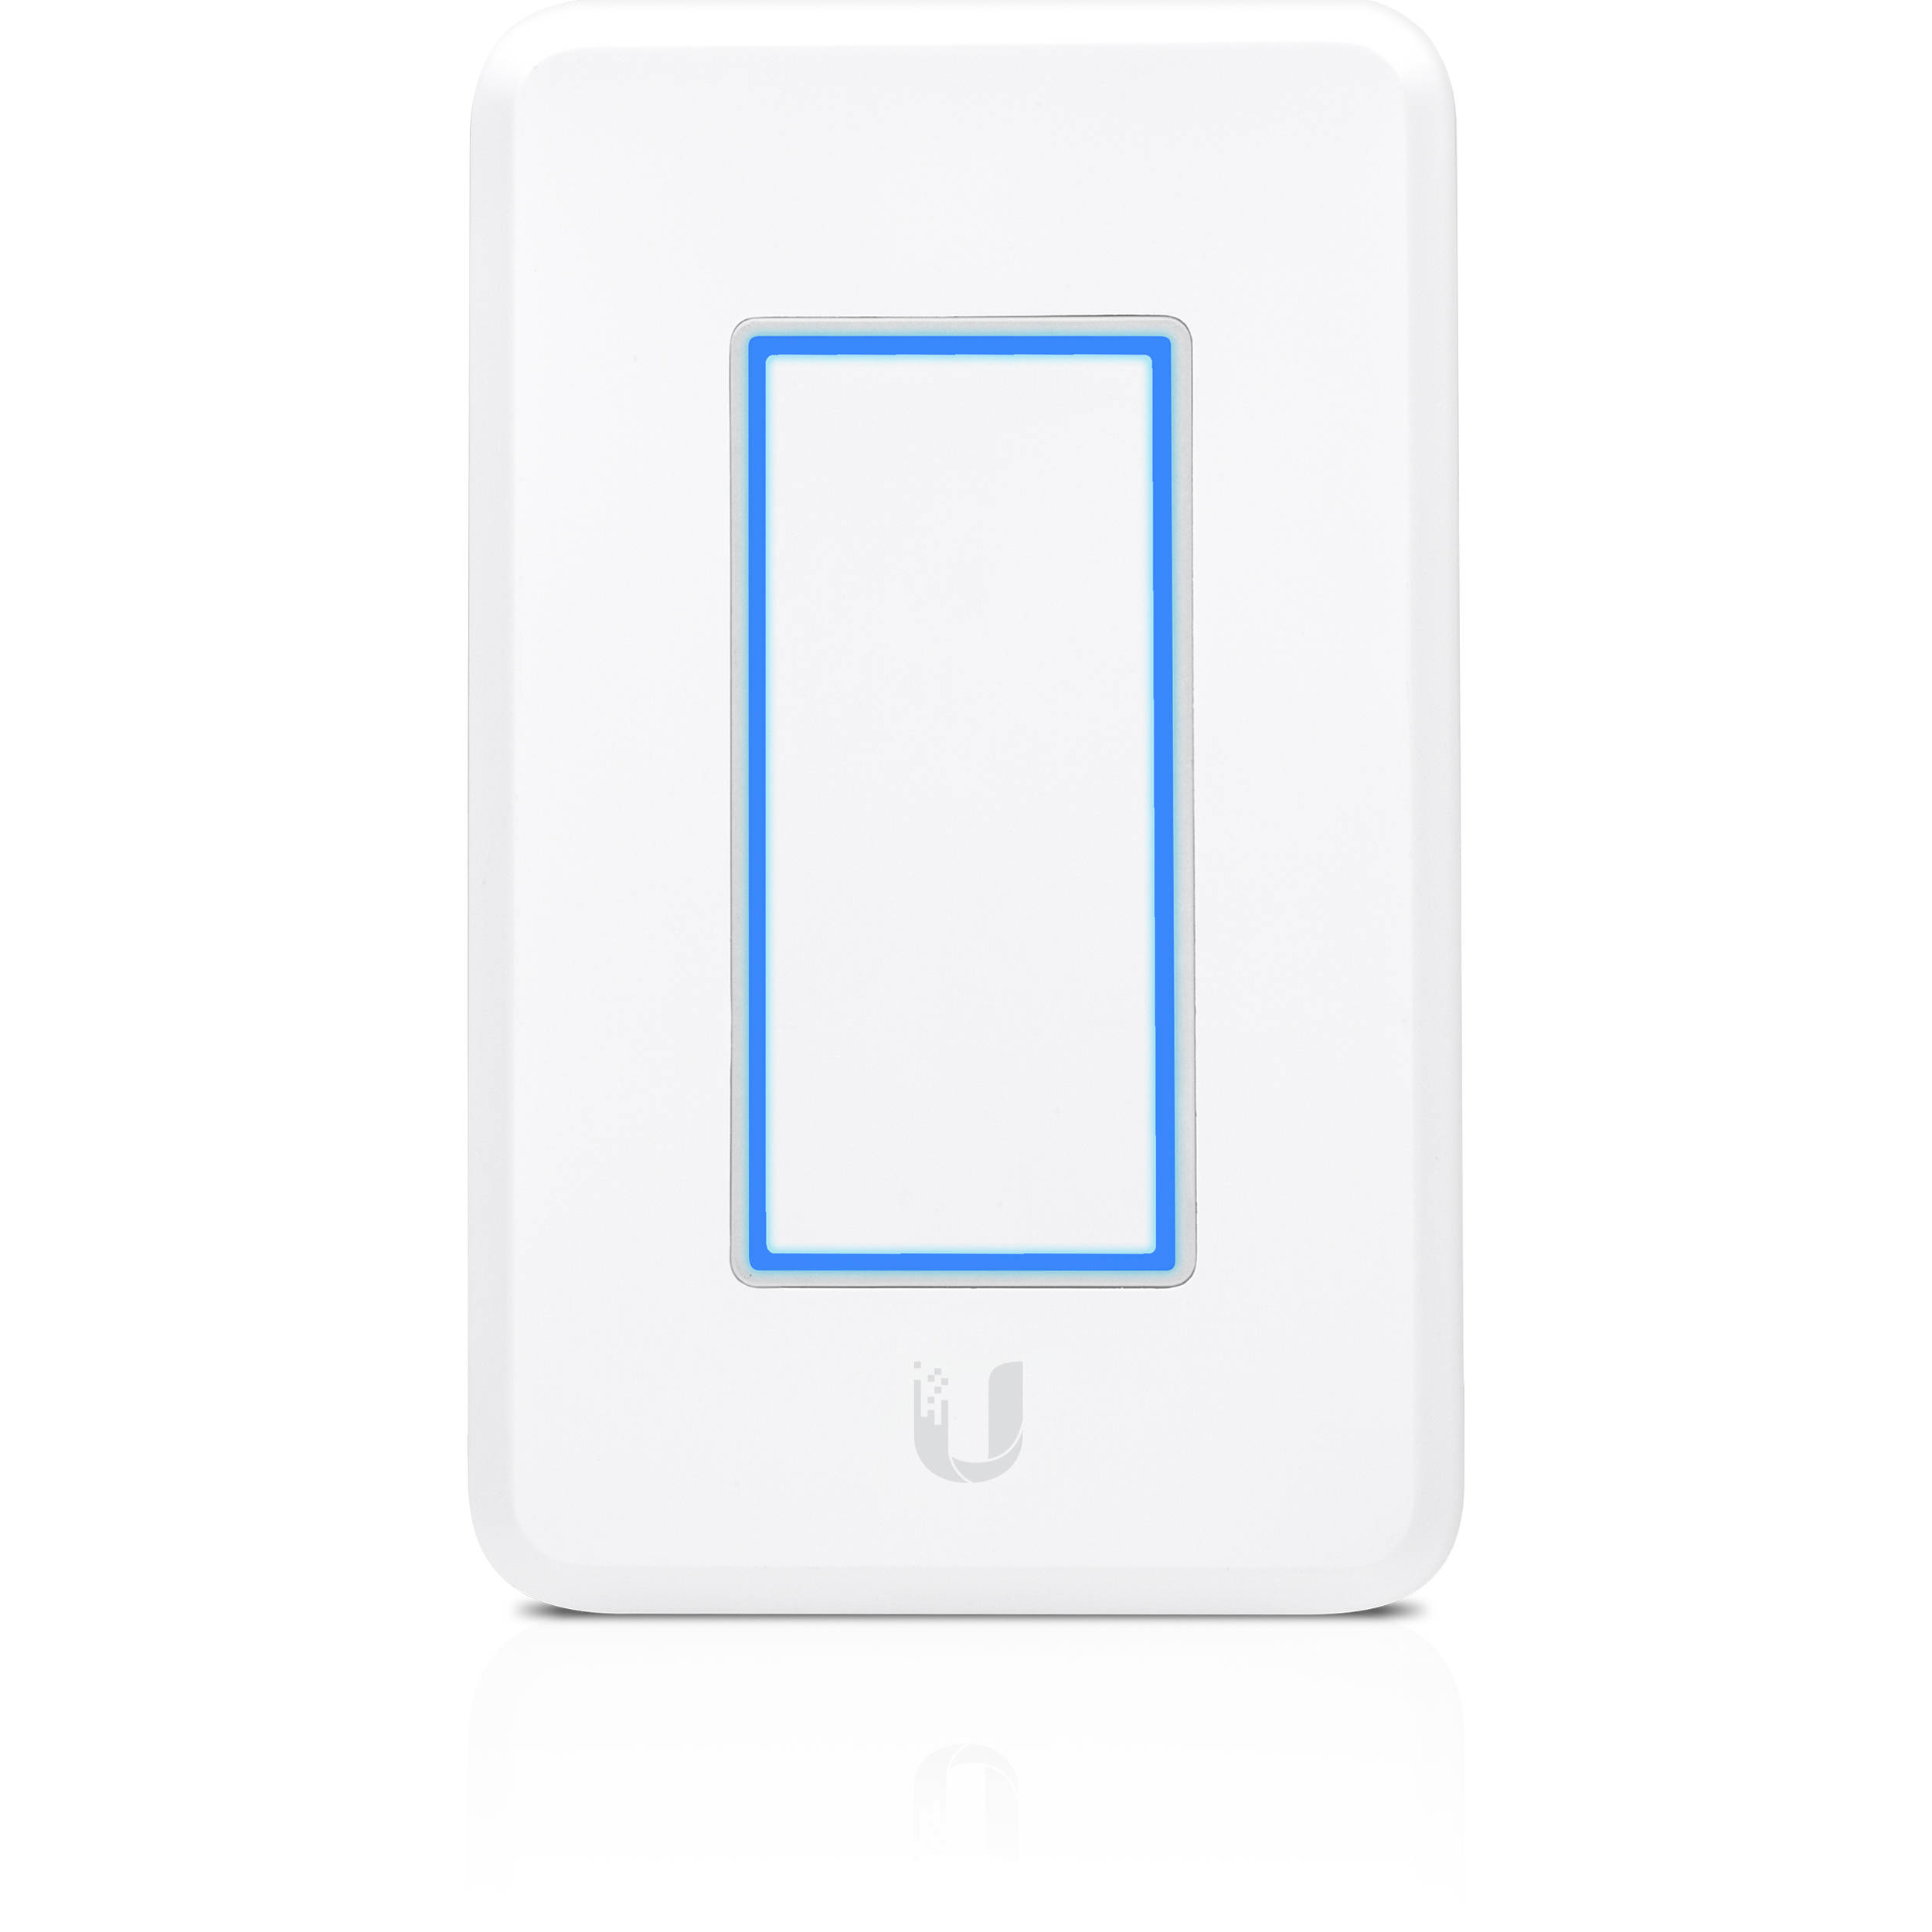 Ubiquiti Unifi Light Dimmer Poe Powered